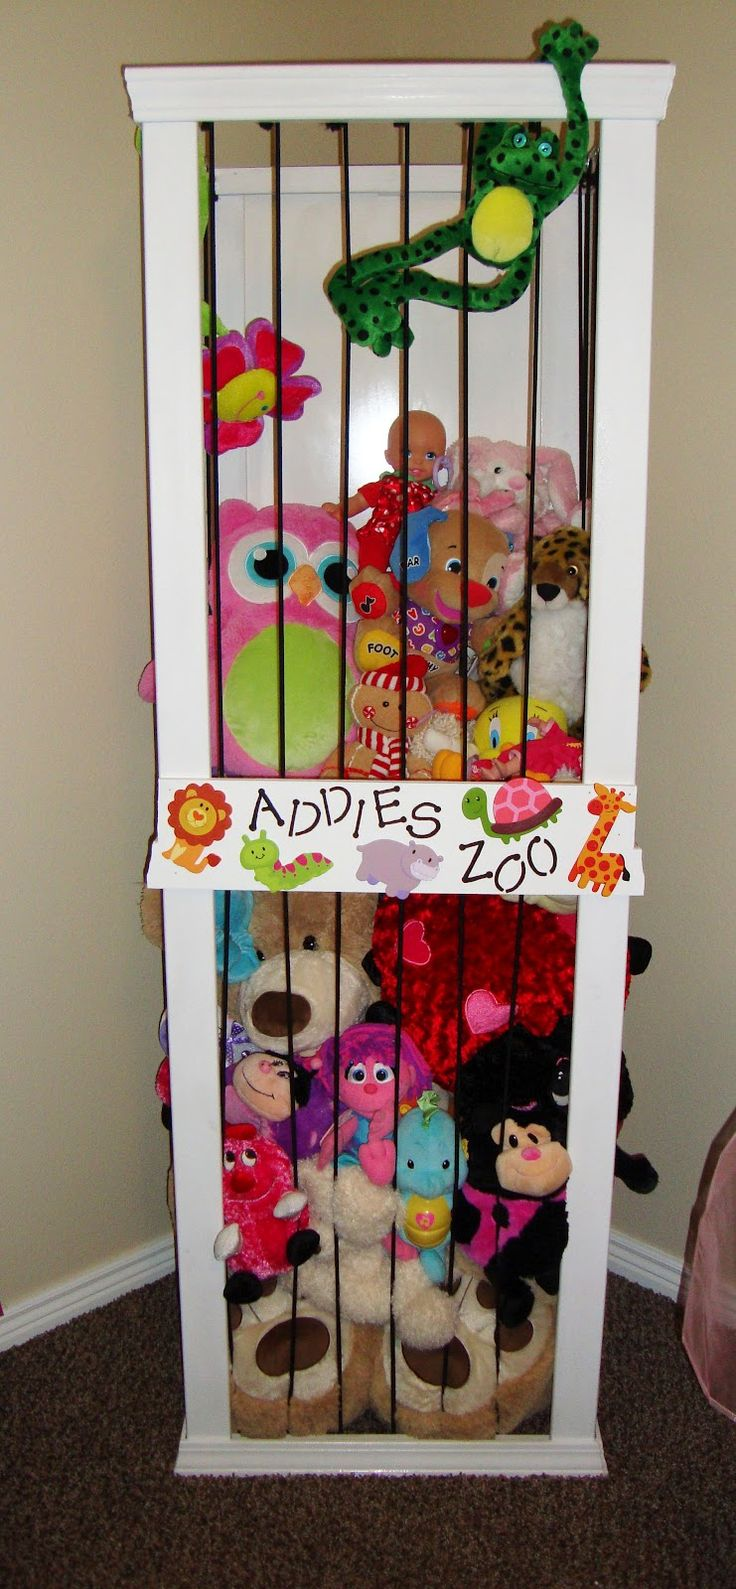 I love this idea for the kids stuffed animals!